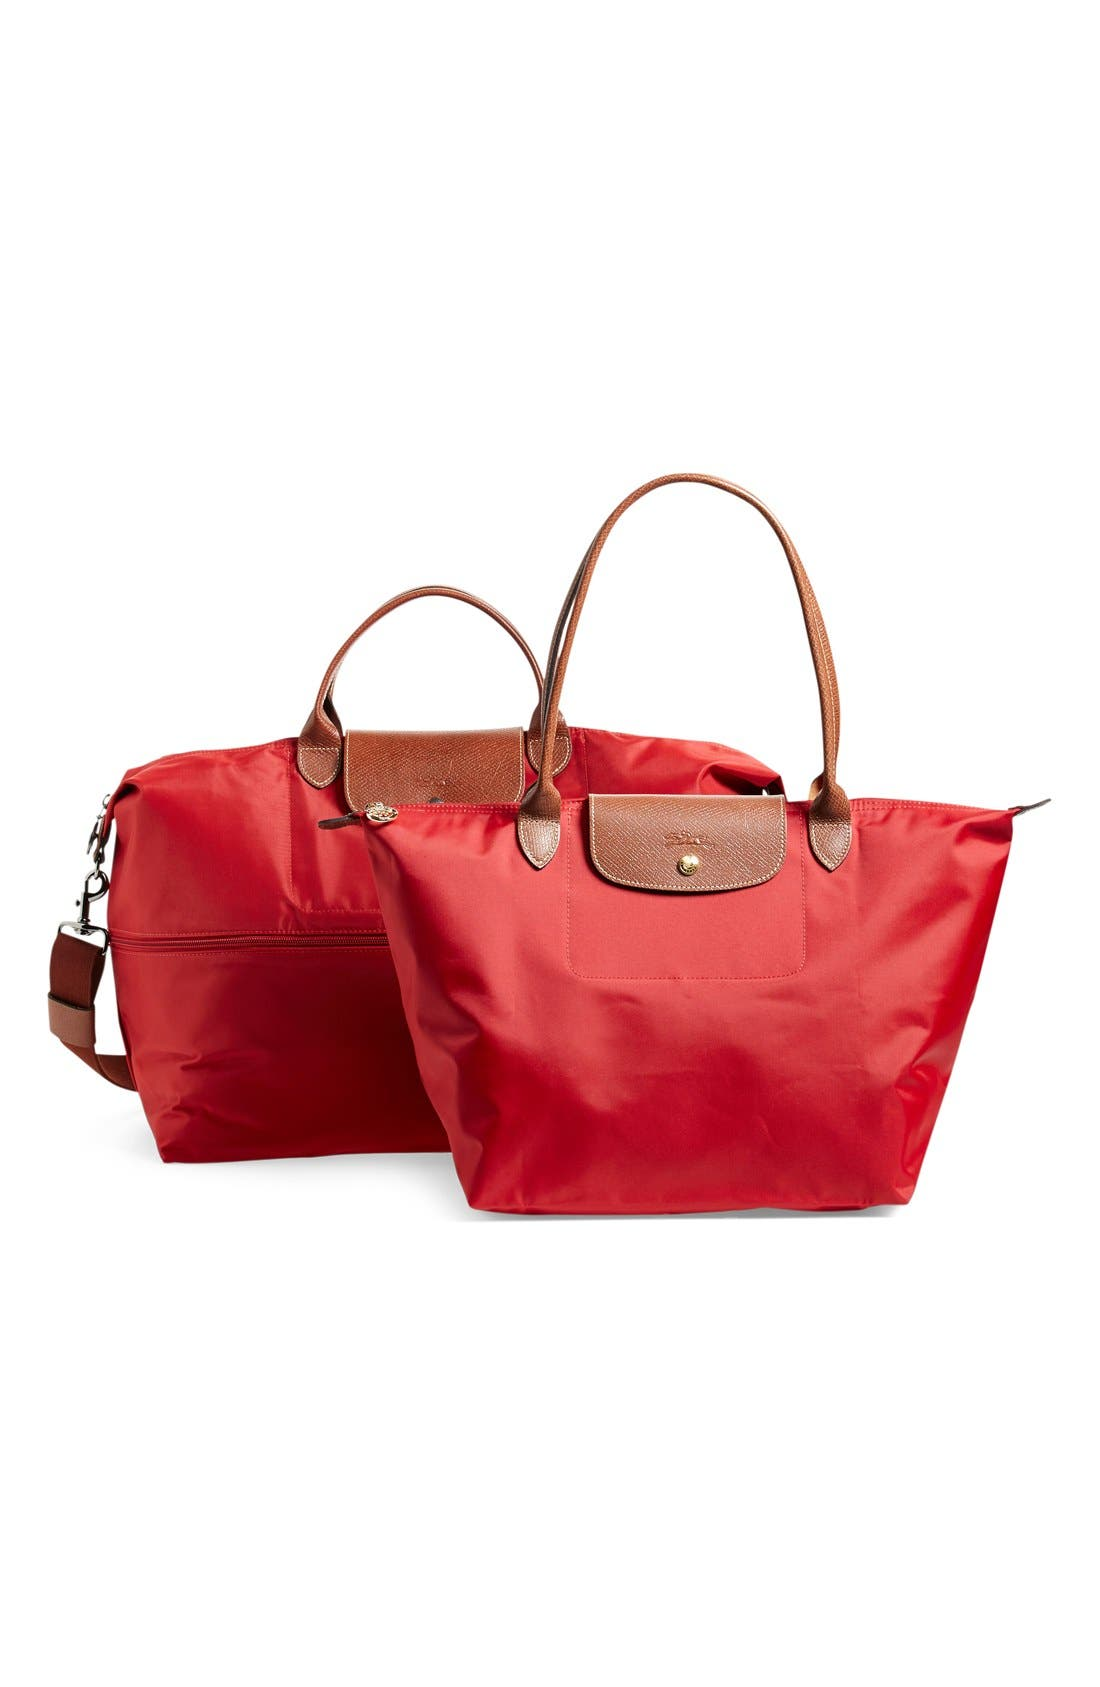 Longchamp Tote & Travel Bag